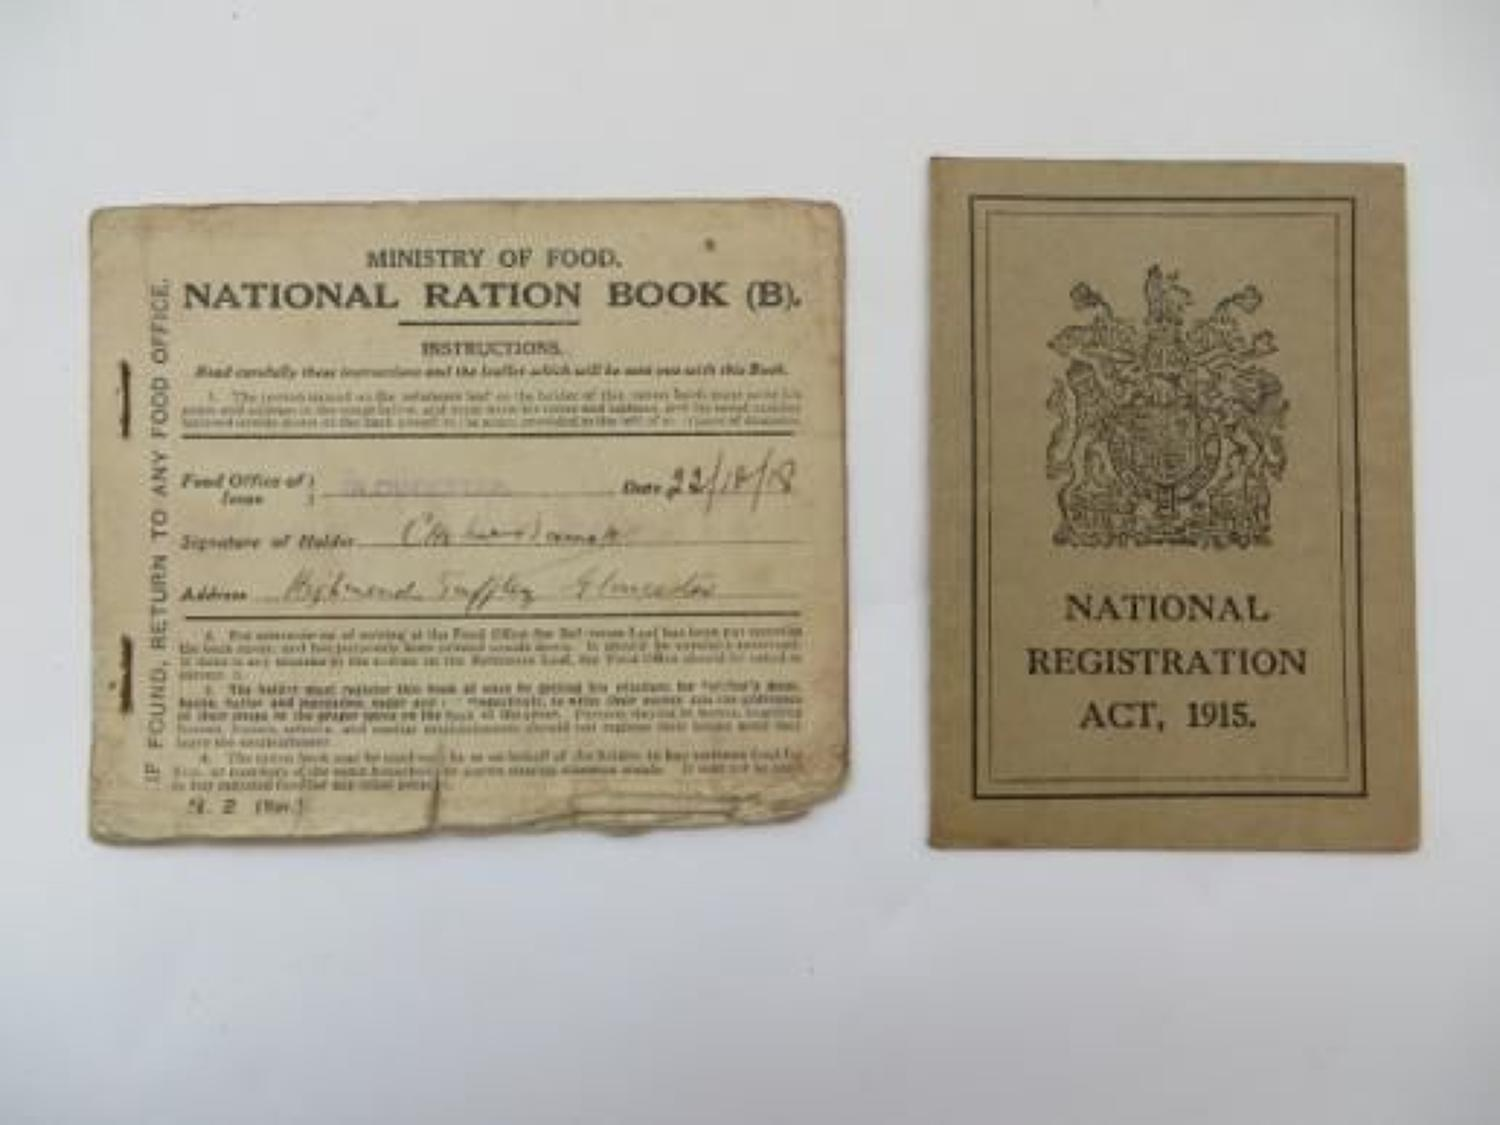 WW 1 National Registration Card and Ration Book